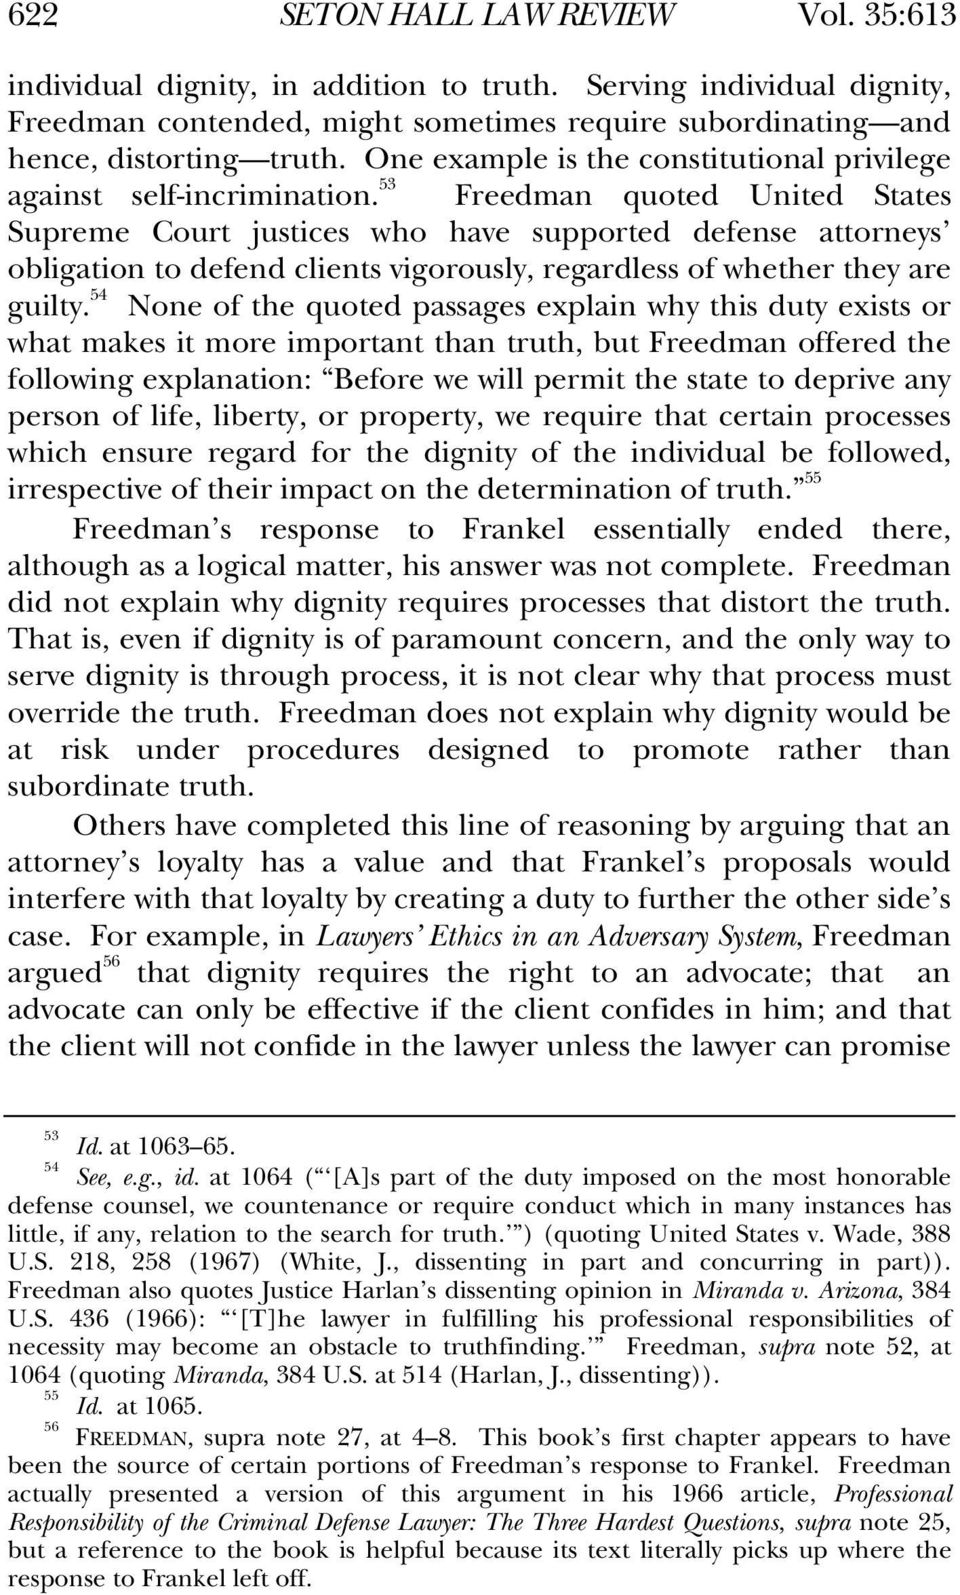 53 Freedman quoted United States Supreme Court justices who have supported defense attorneys obligation to defend clients vigorously, regardless of whether they are guilty.